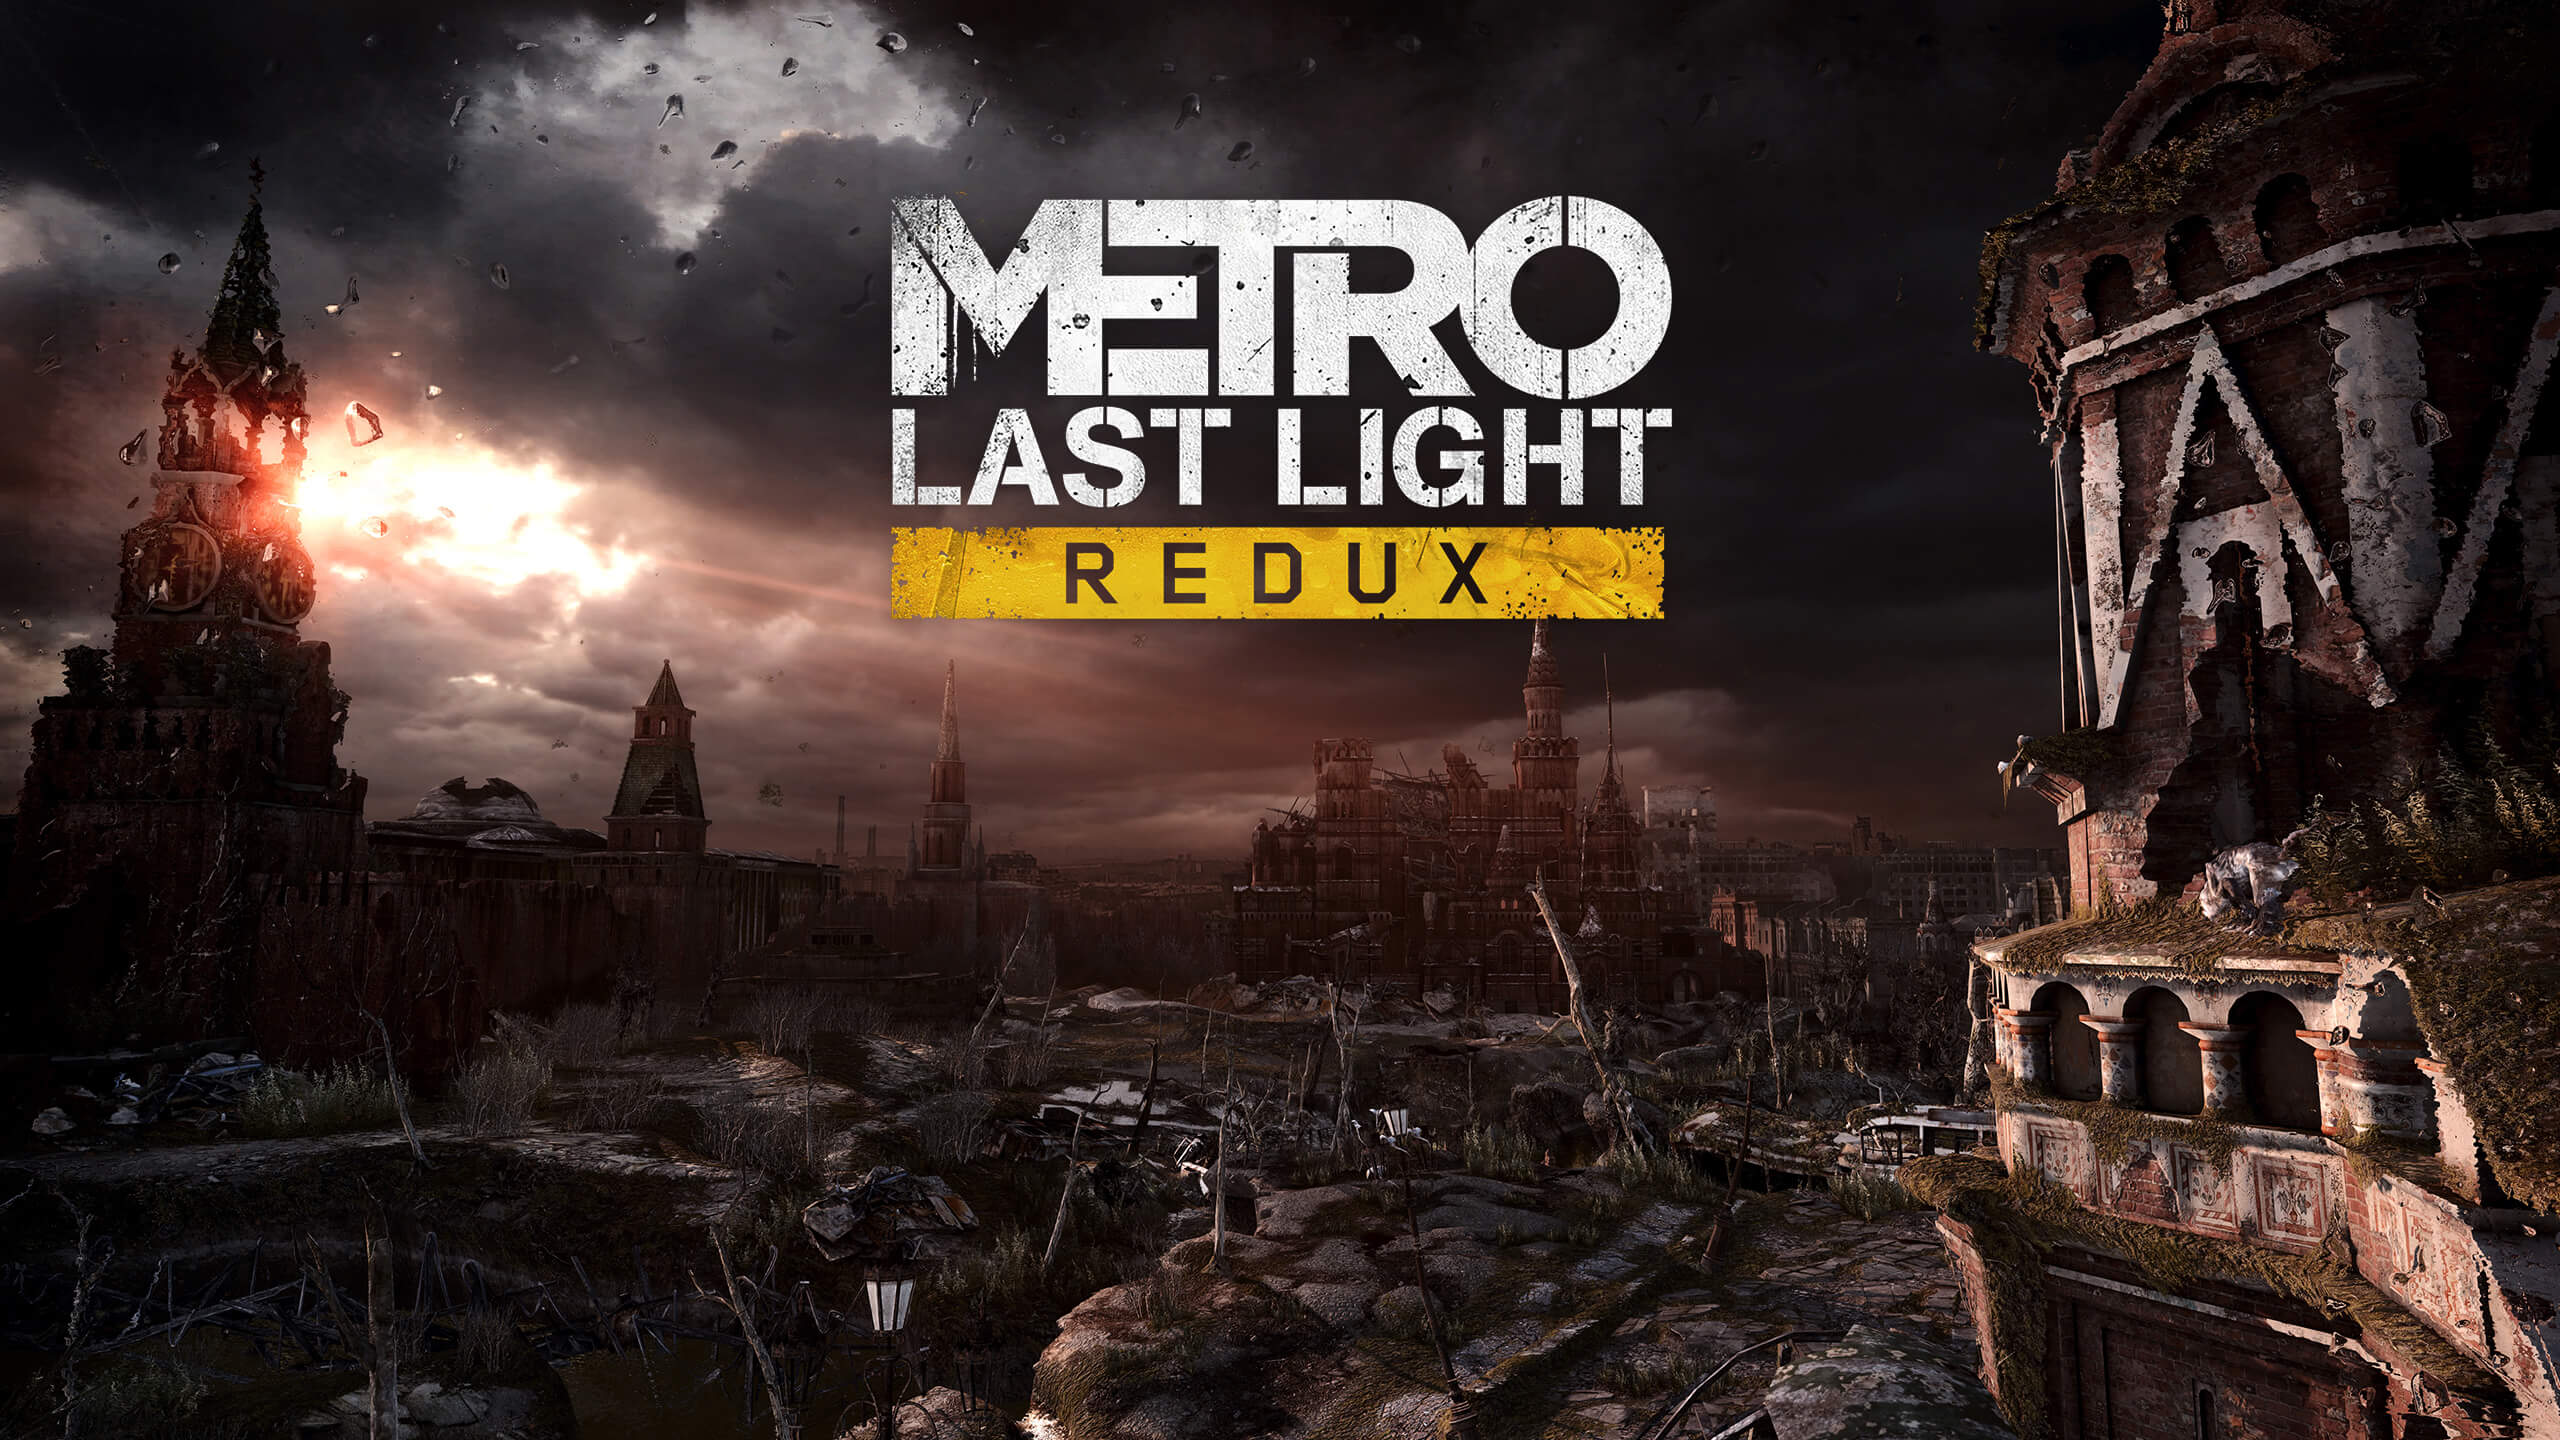 Mankind is at odds, locked in a struggle for ultimate power while the world crumbles. Defeat the darkness in Metro Last Light Redux, now available and 75% off during the Epic Mega Sale!